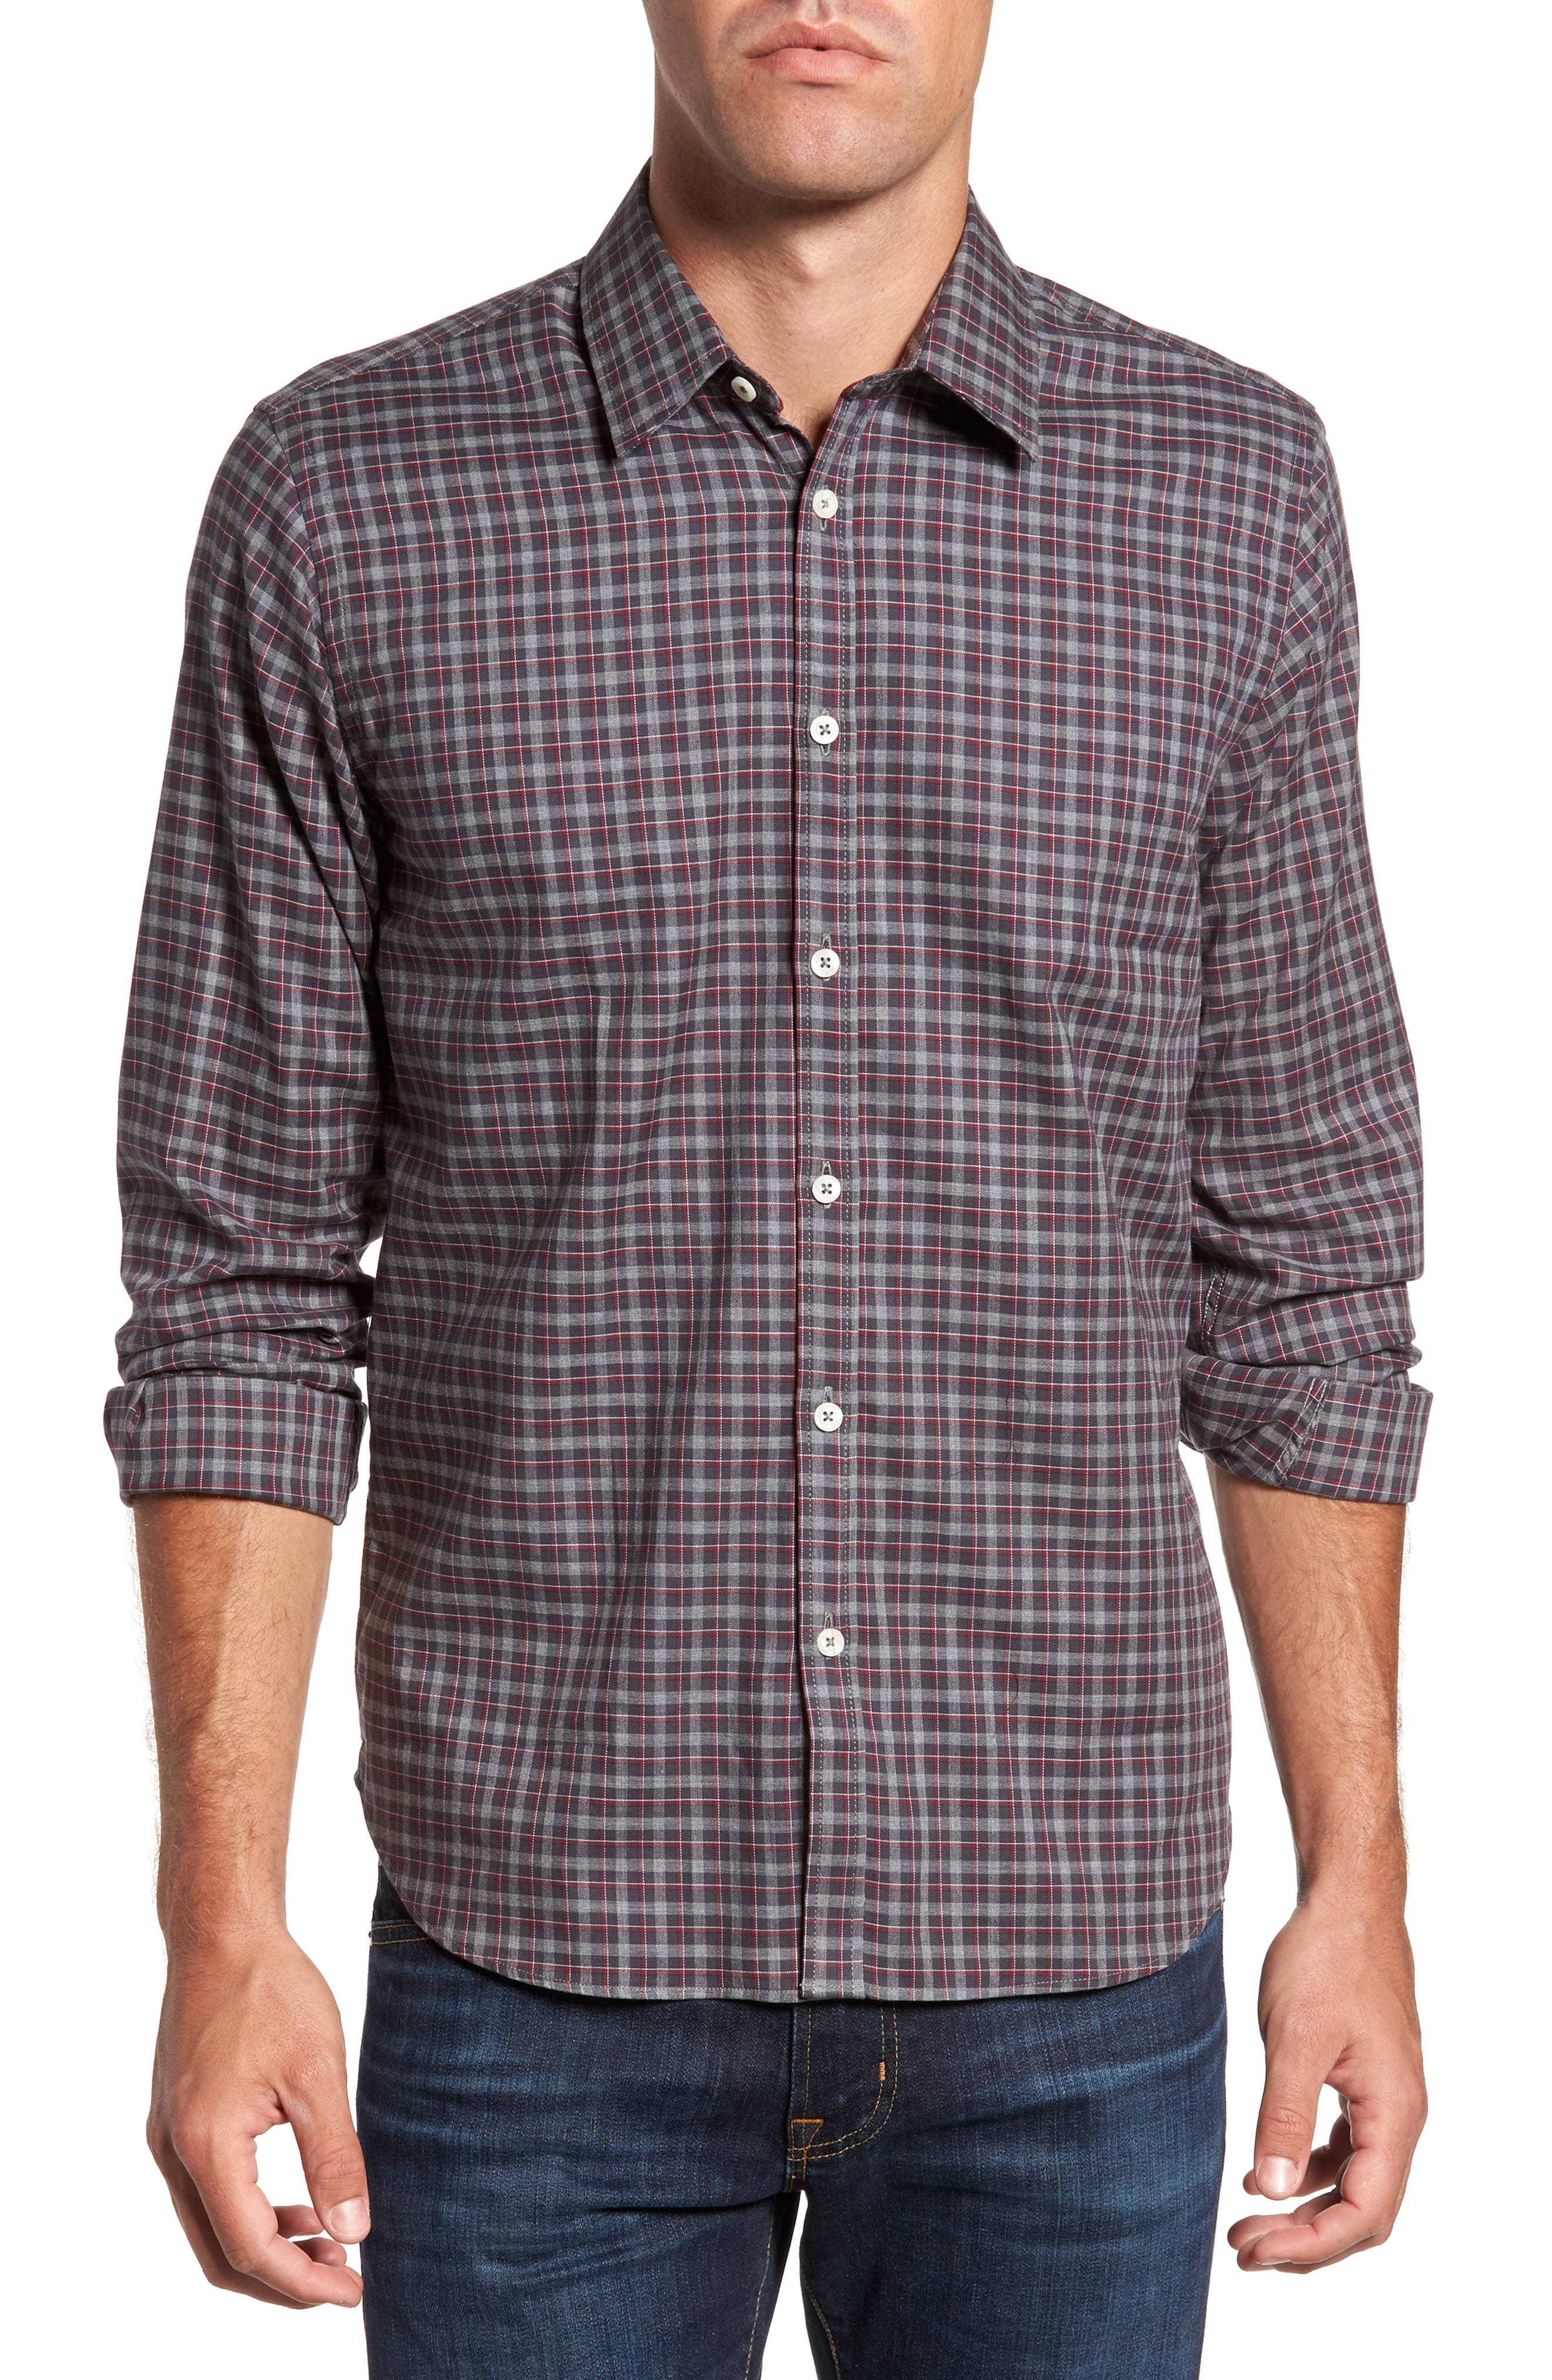 Jeremy Argyle Slim Fit Plaid Sport Shirt